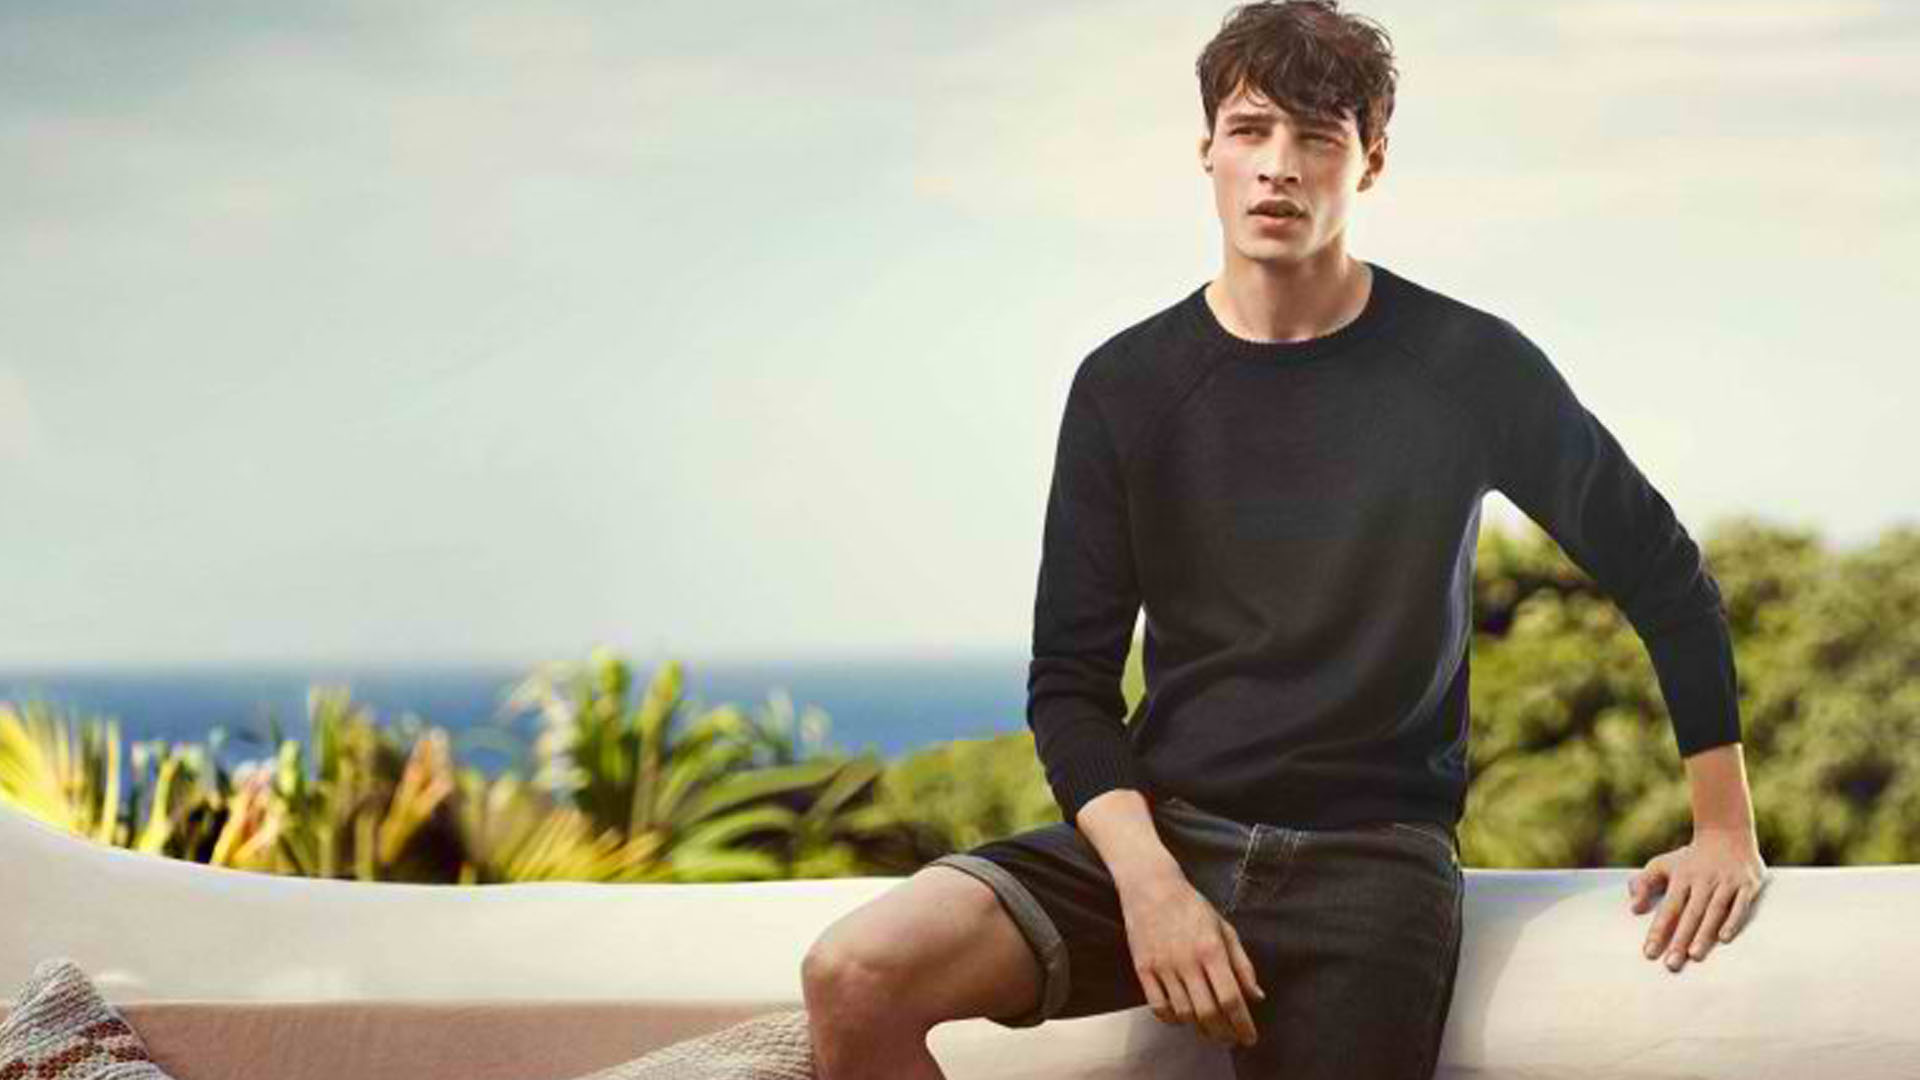 H&M BRINGS IN TROPICAL TASTEMAKER IN NEW COLLECTION